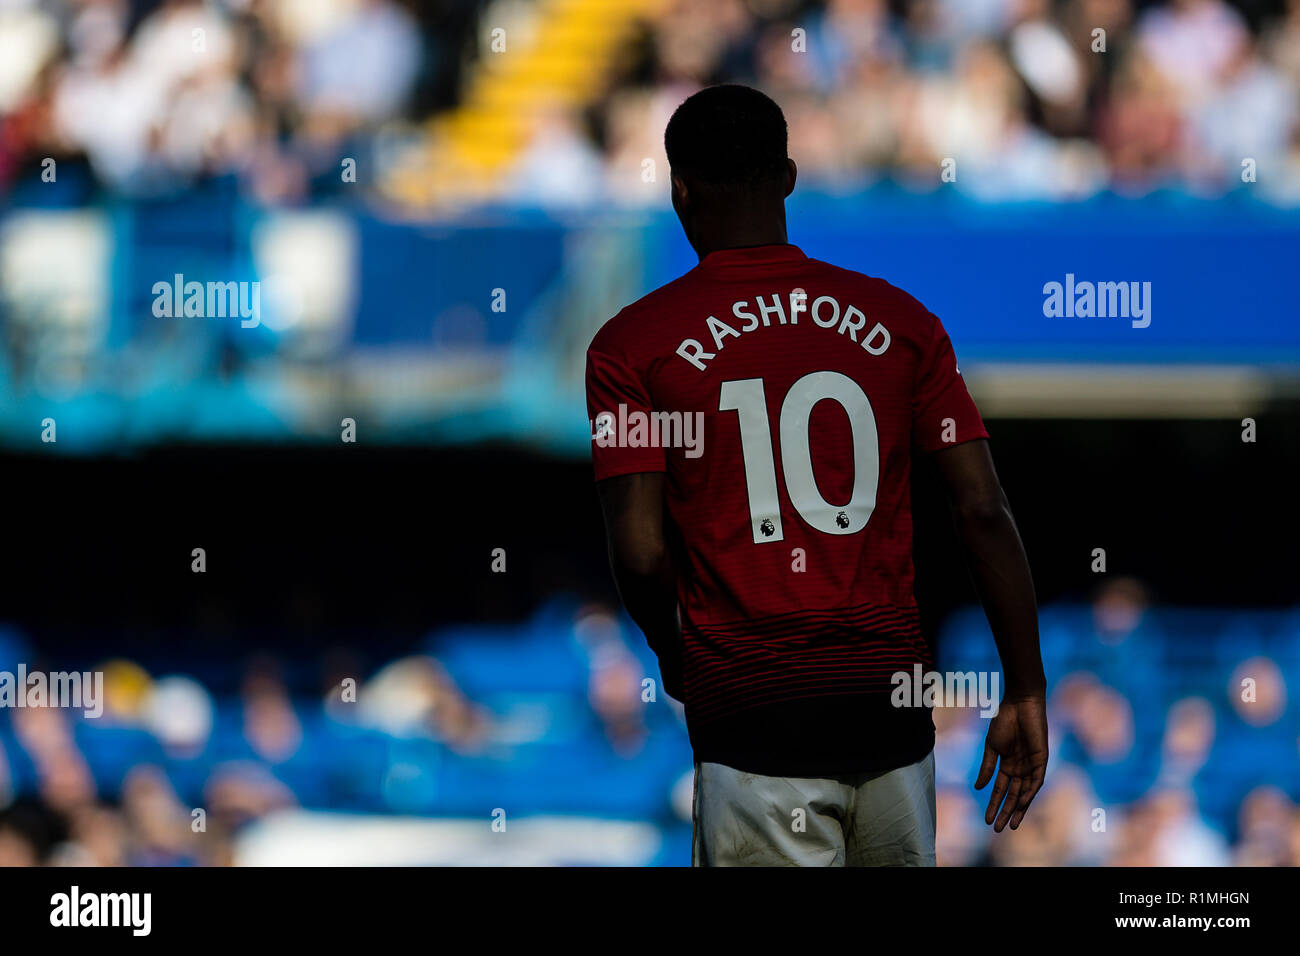 LONDON, ENGLAND - OCTOBER 20: Marcus Rashford during the Premier League match between Chelsea FC and Manchester United at Stamford Bridge on October 20, 2018 in London, United Kingdom. (Photo by Sebastian Frej/MB Media/Getty Images) - Stock Image